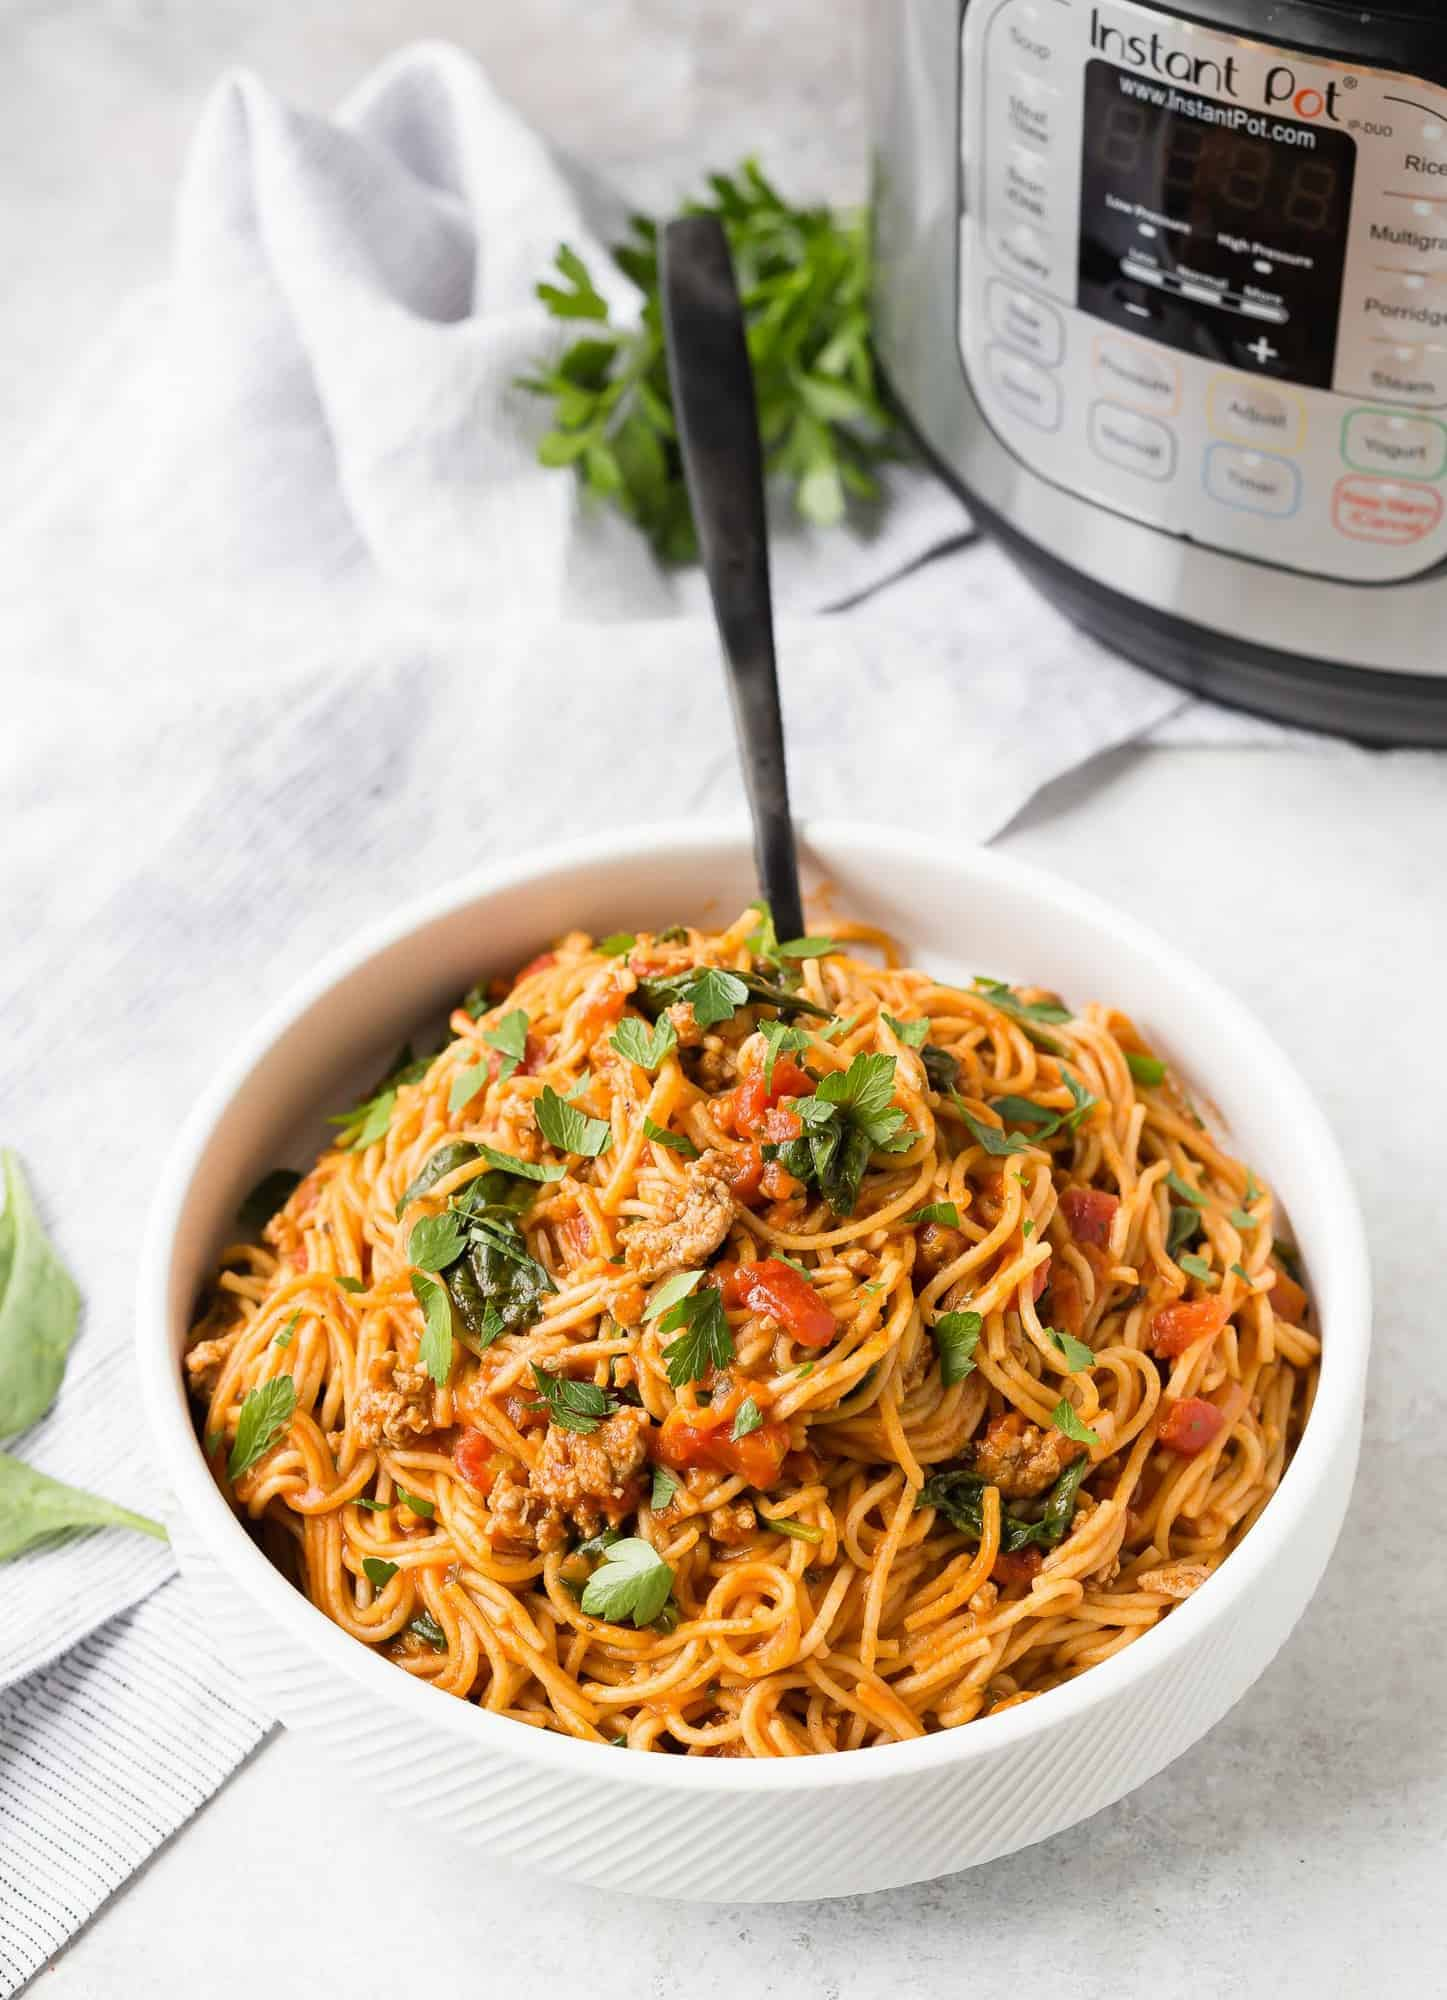 A large white bowl filled with spaghetti in tomato sauce, a pressure cooker and fresh parsley in the background of the image.